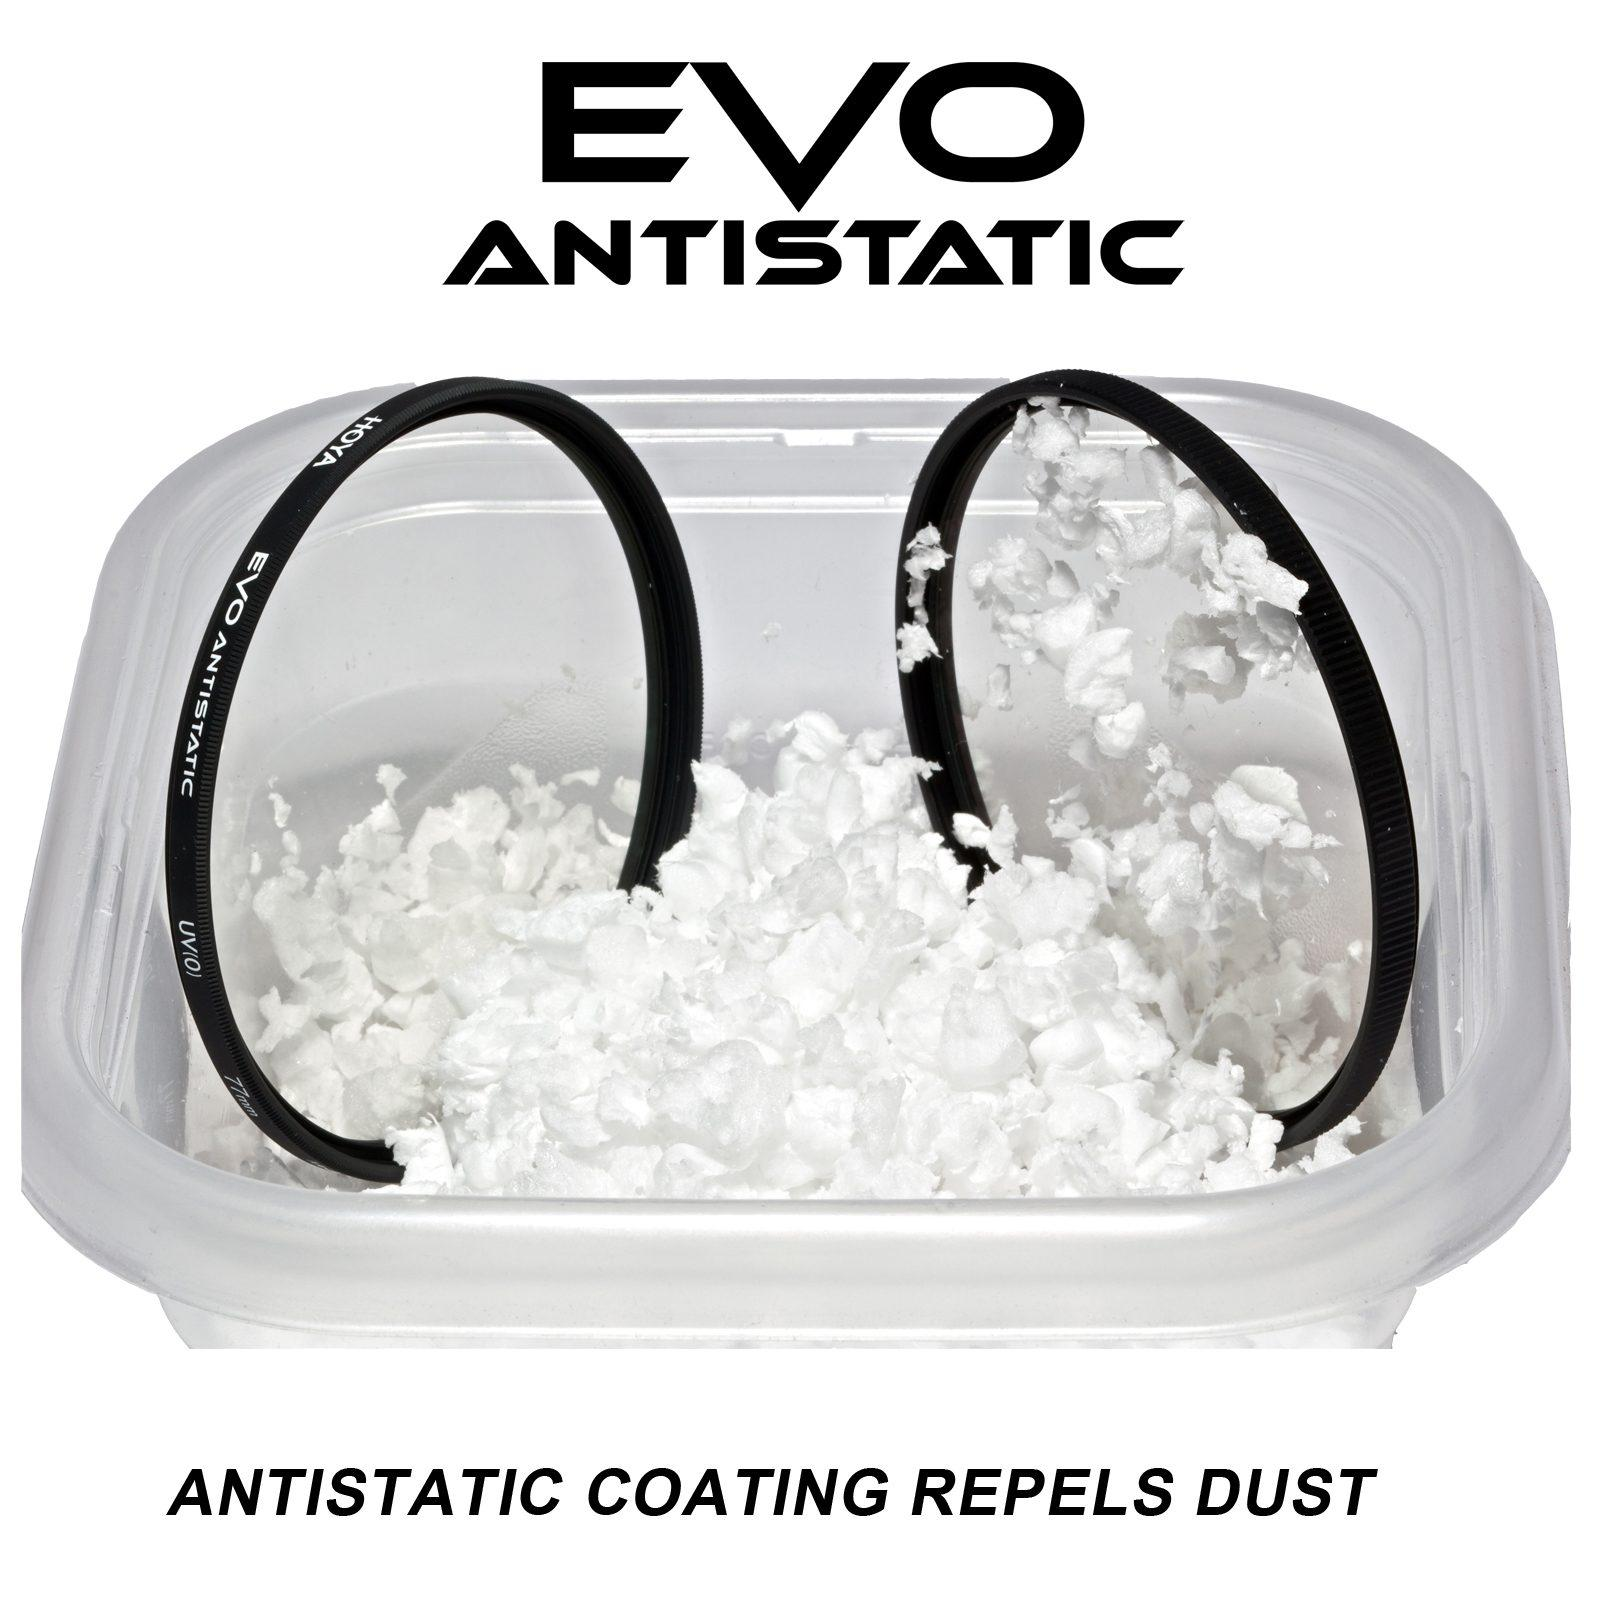 Hoya EVO Antistatic Filter Series